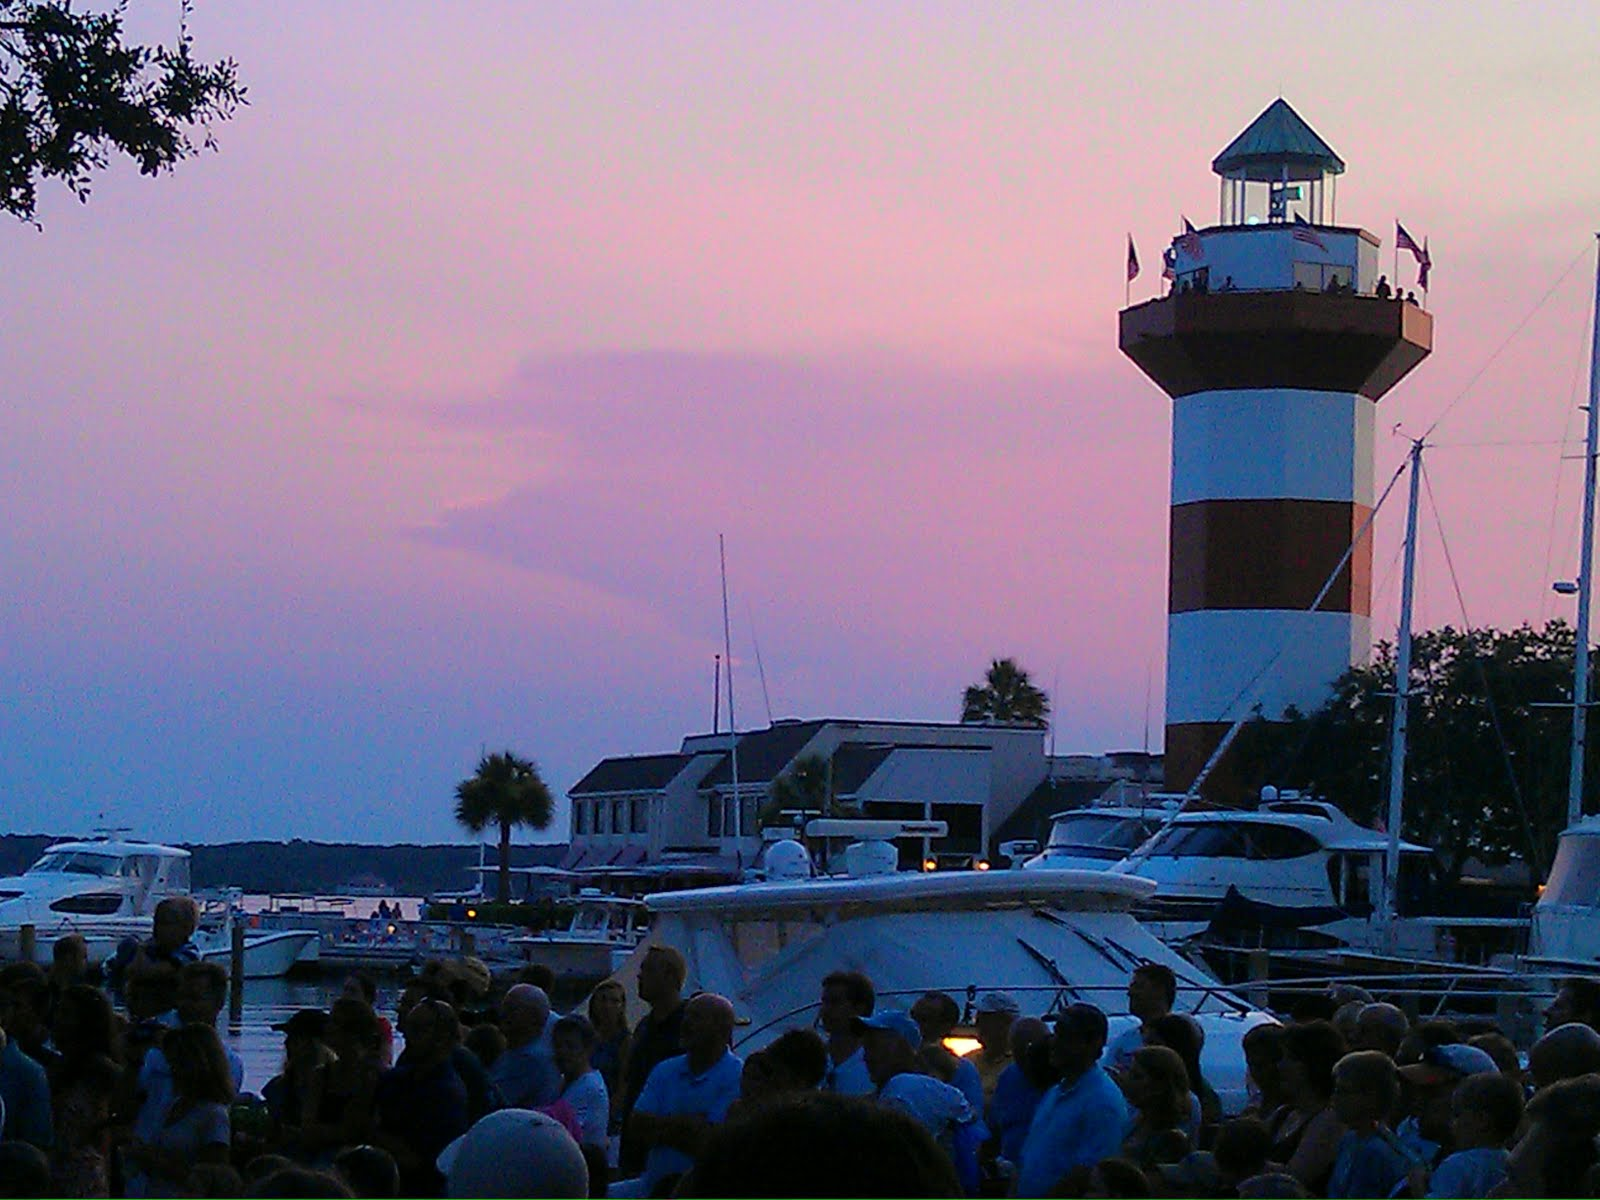 harbour town - photo #24